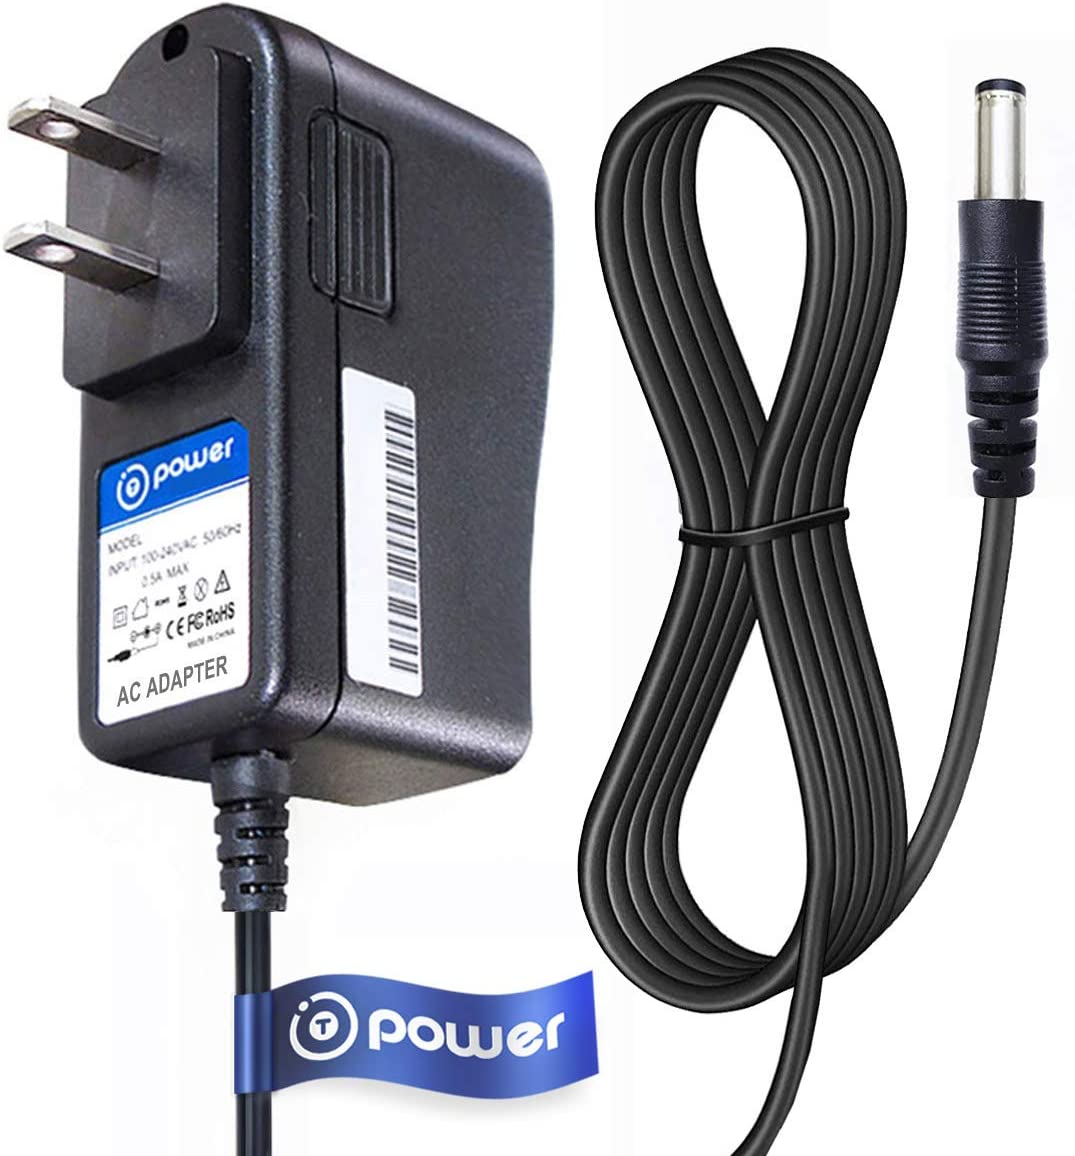 Outlet SALE T-Power 9vdc 6.6ft Long Cable gift Compatible wi Charger AC Adapter